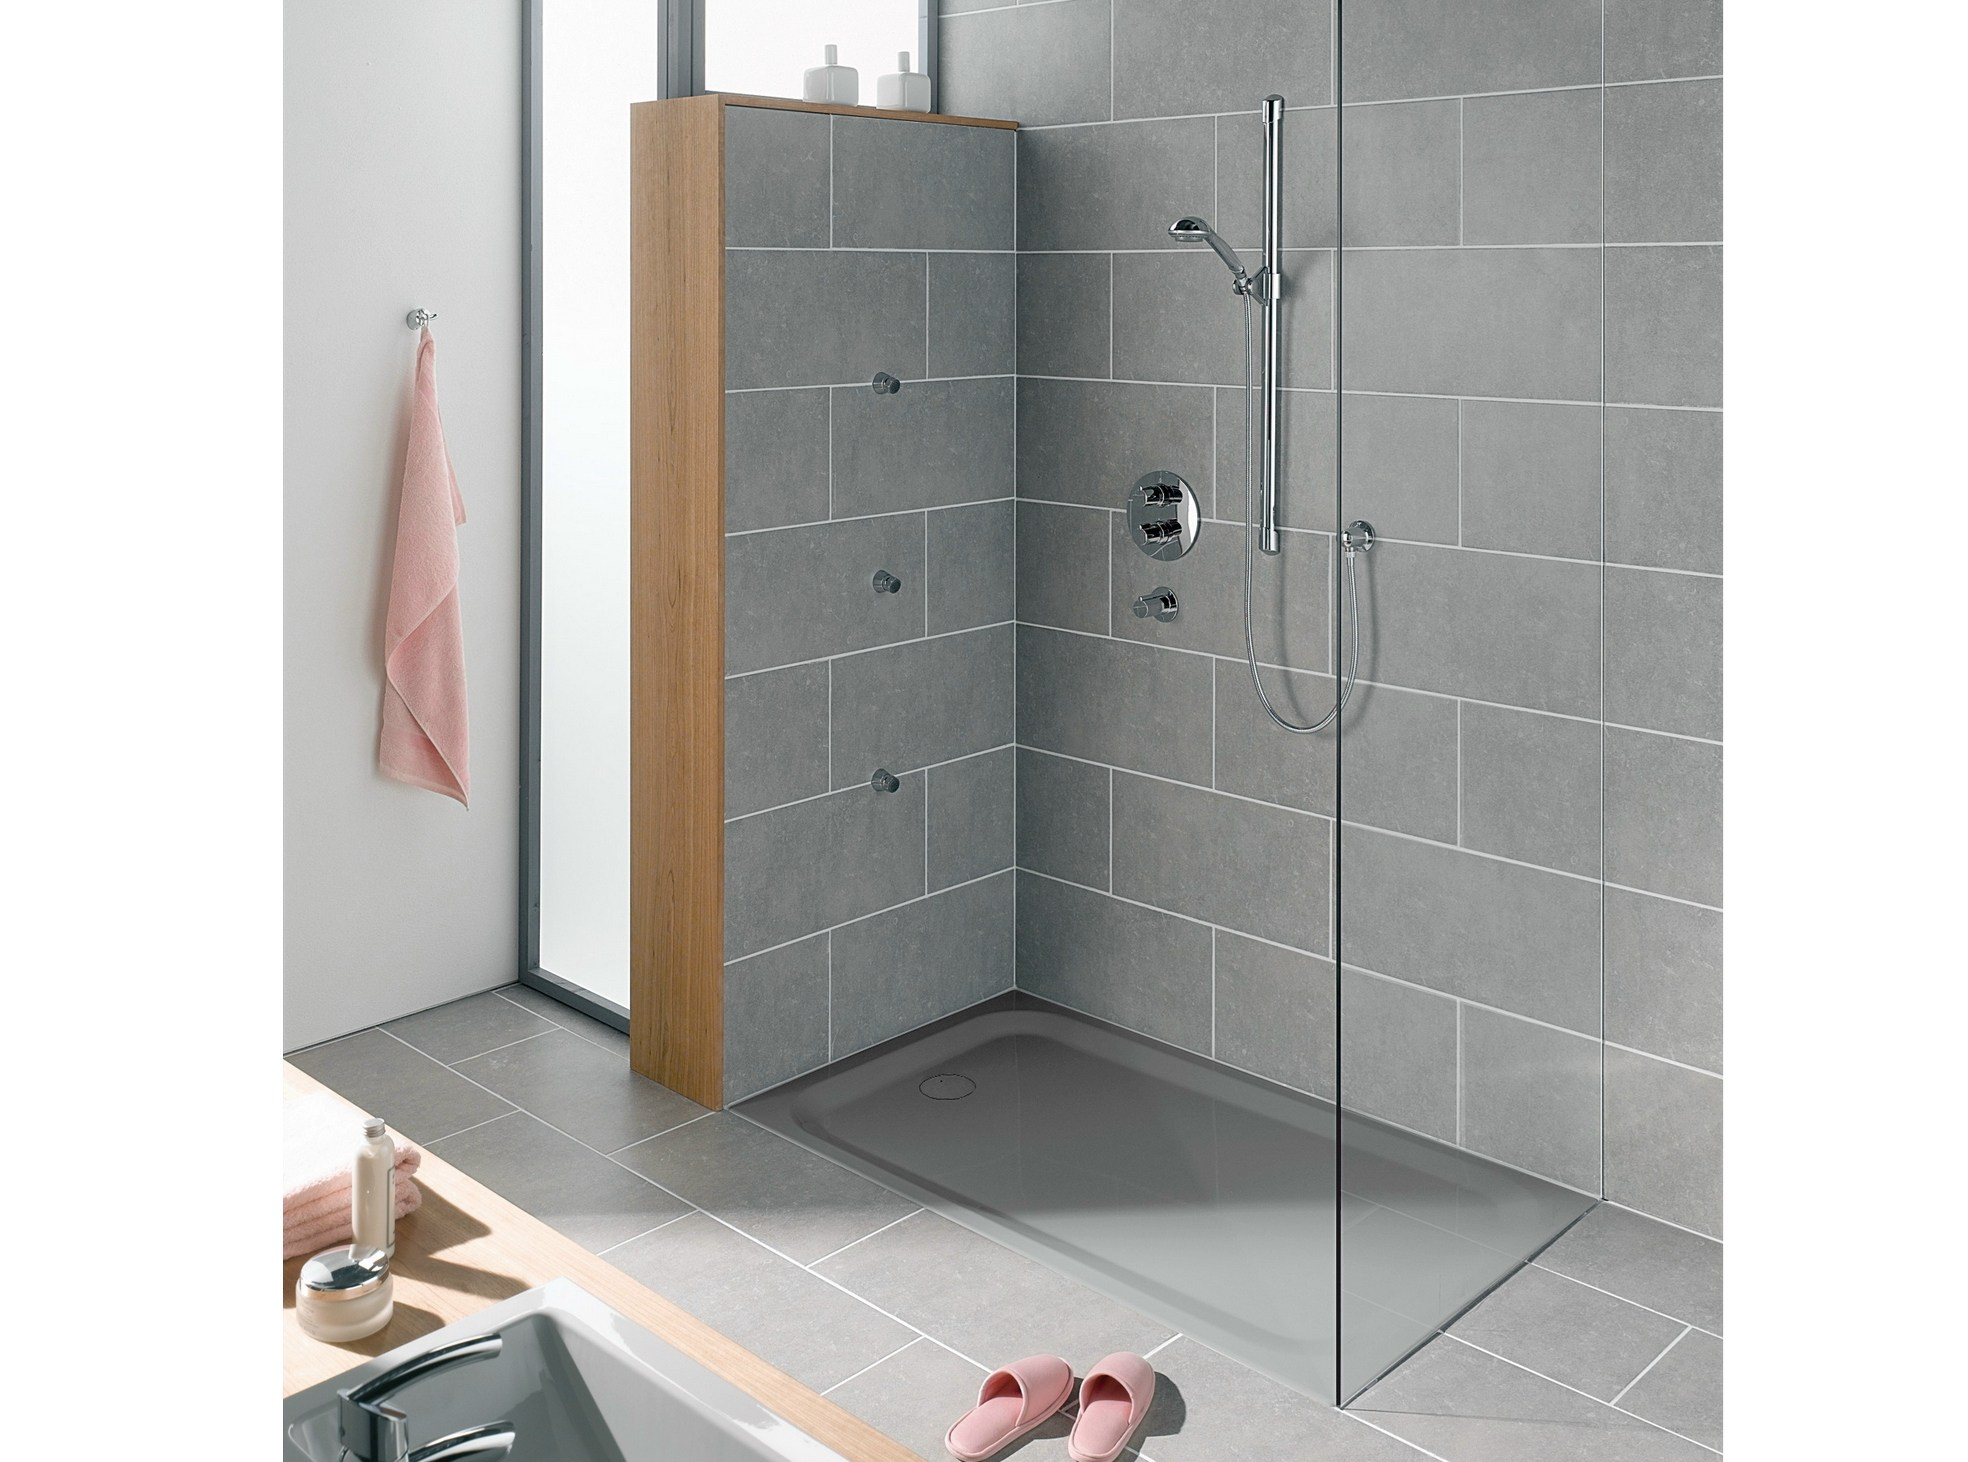 Superflach plato de ducha rectangular by bette for Duchas a ras de suelo